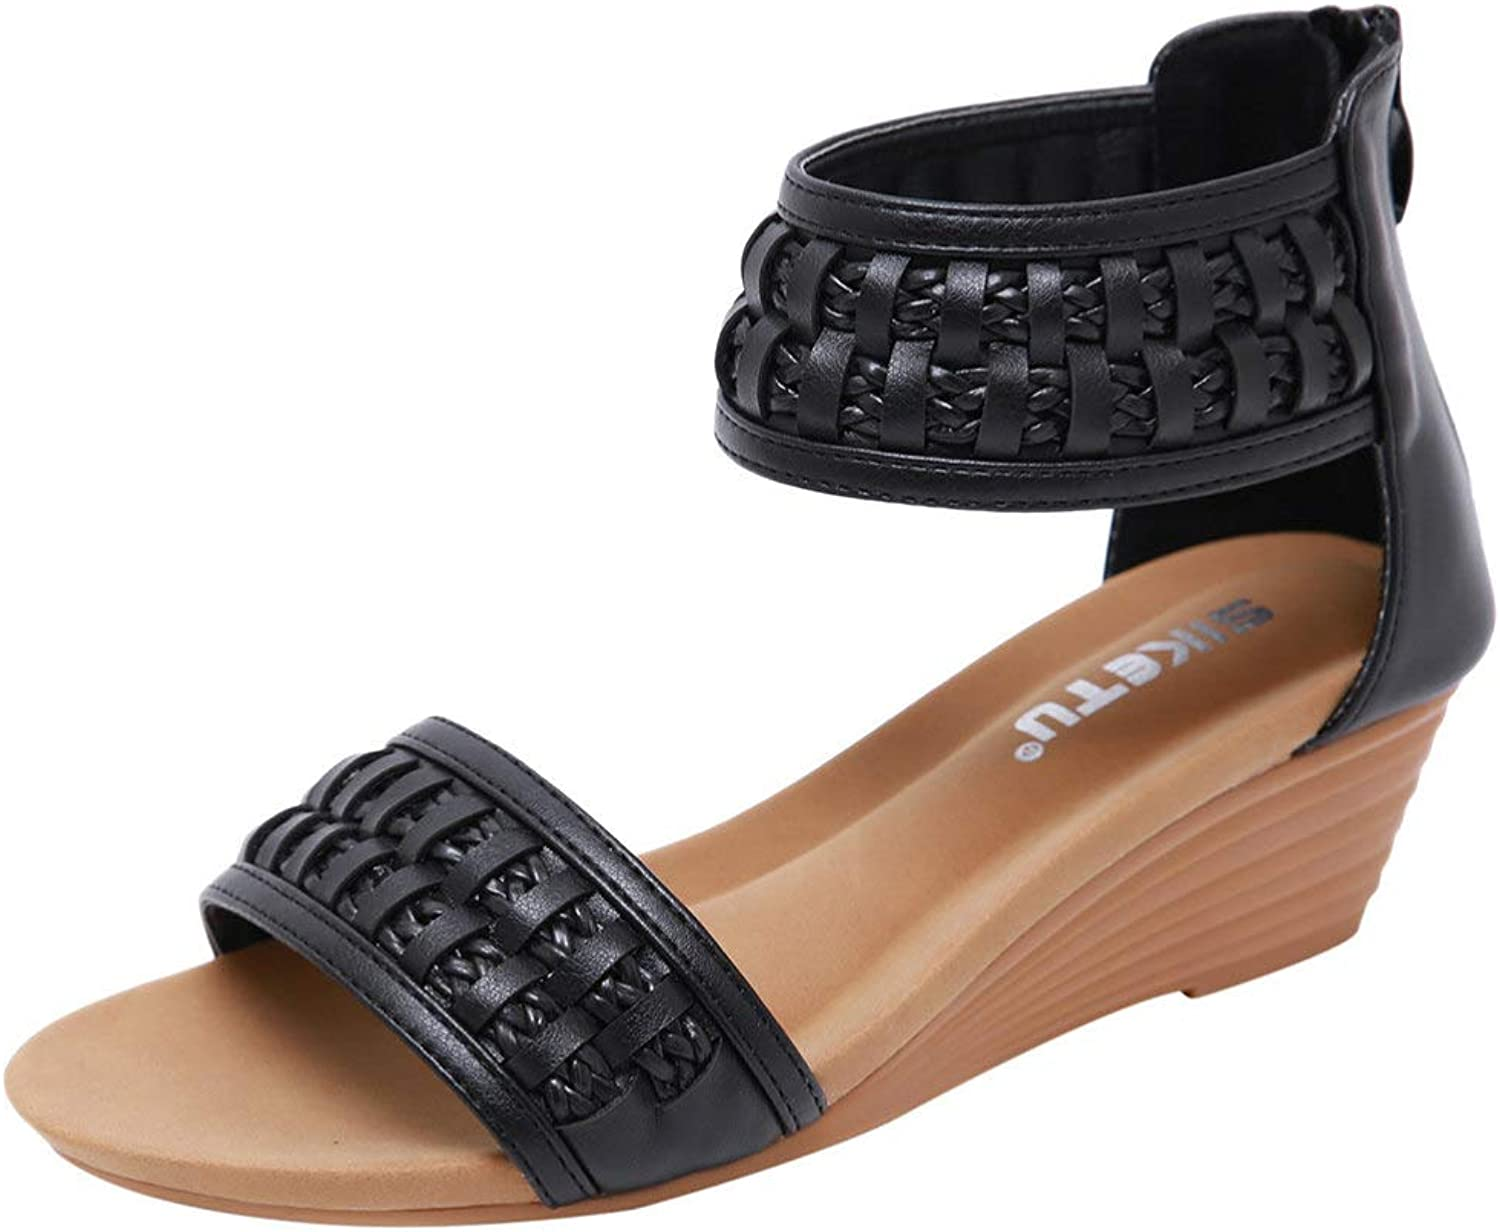 T-JULY Women's Casual Zipper Single shoes Women's Braided Bohemian Wedges Sandals Comfortable Sandal